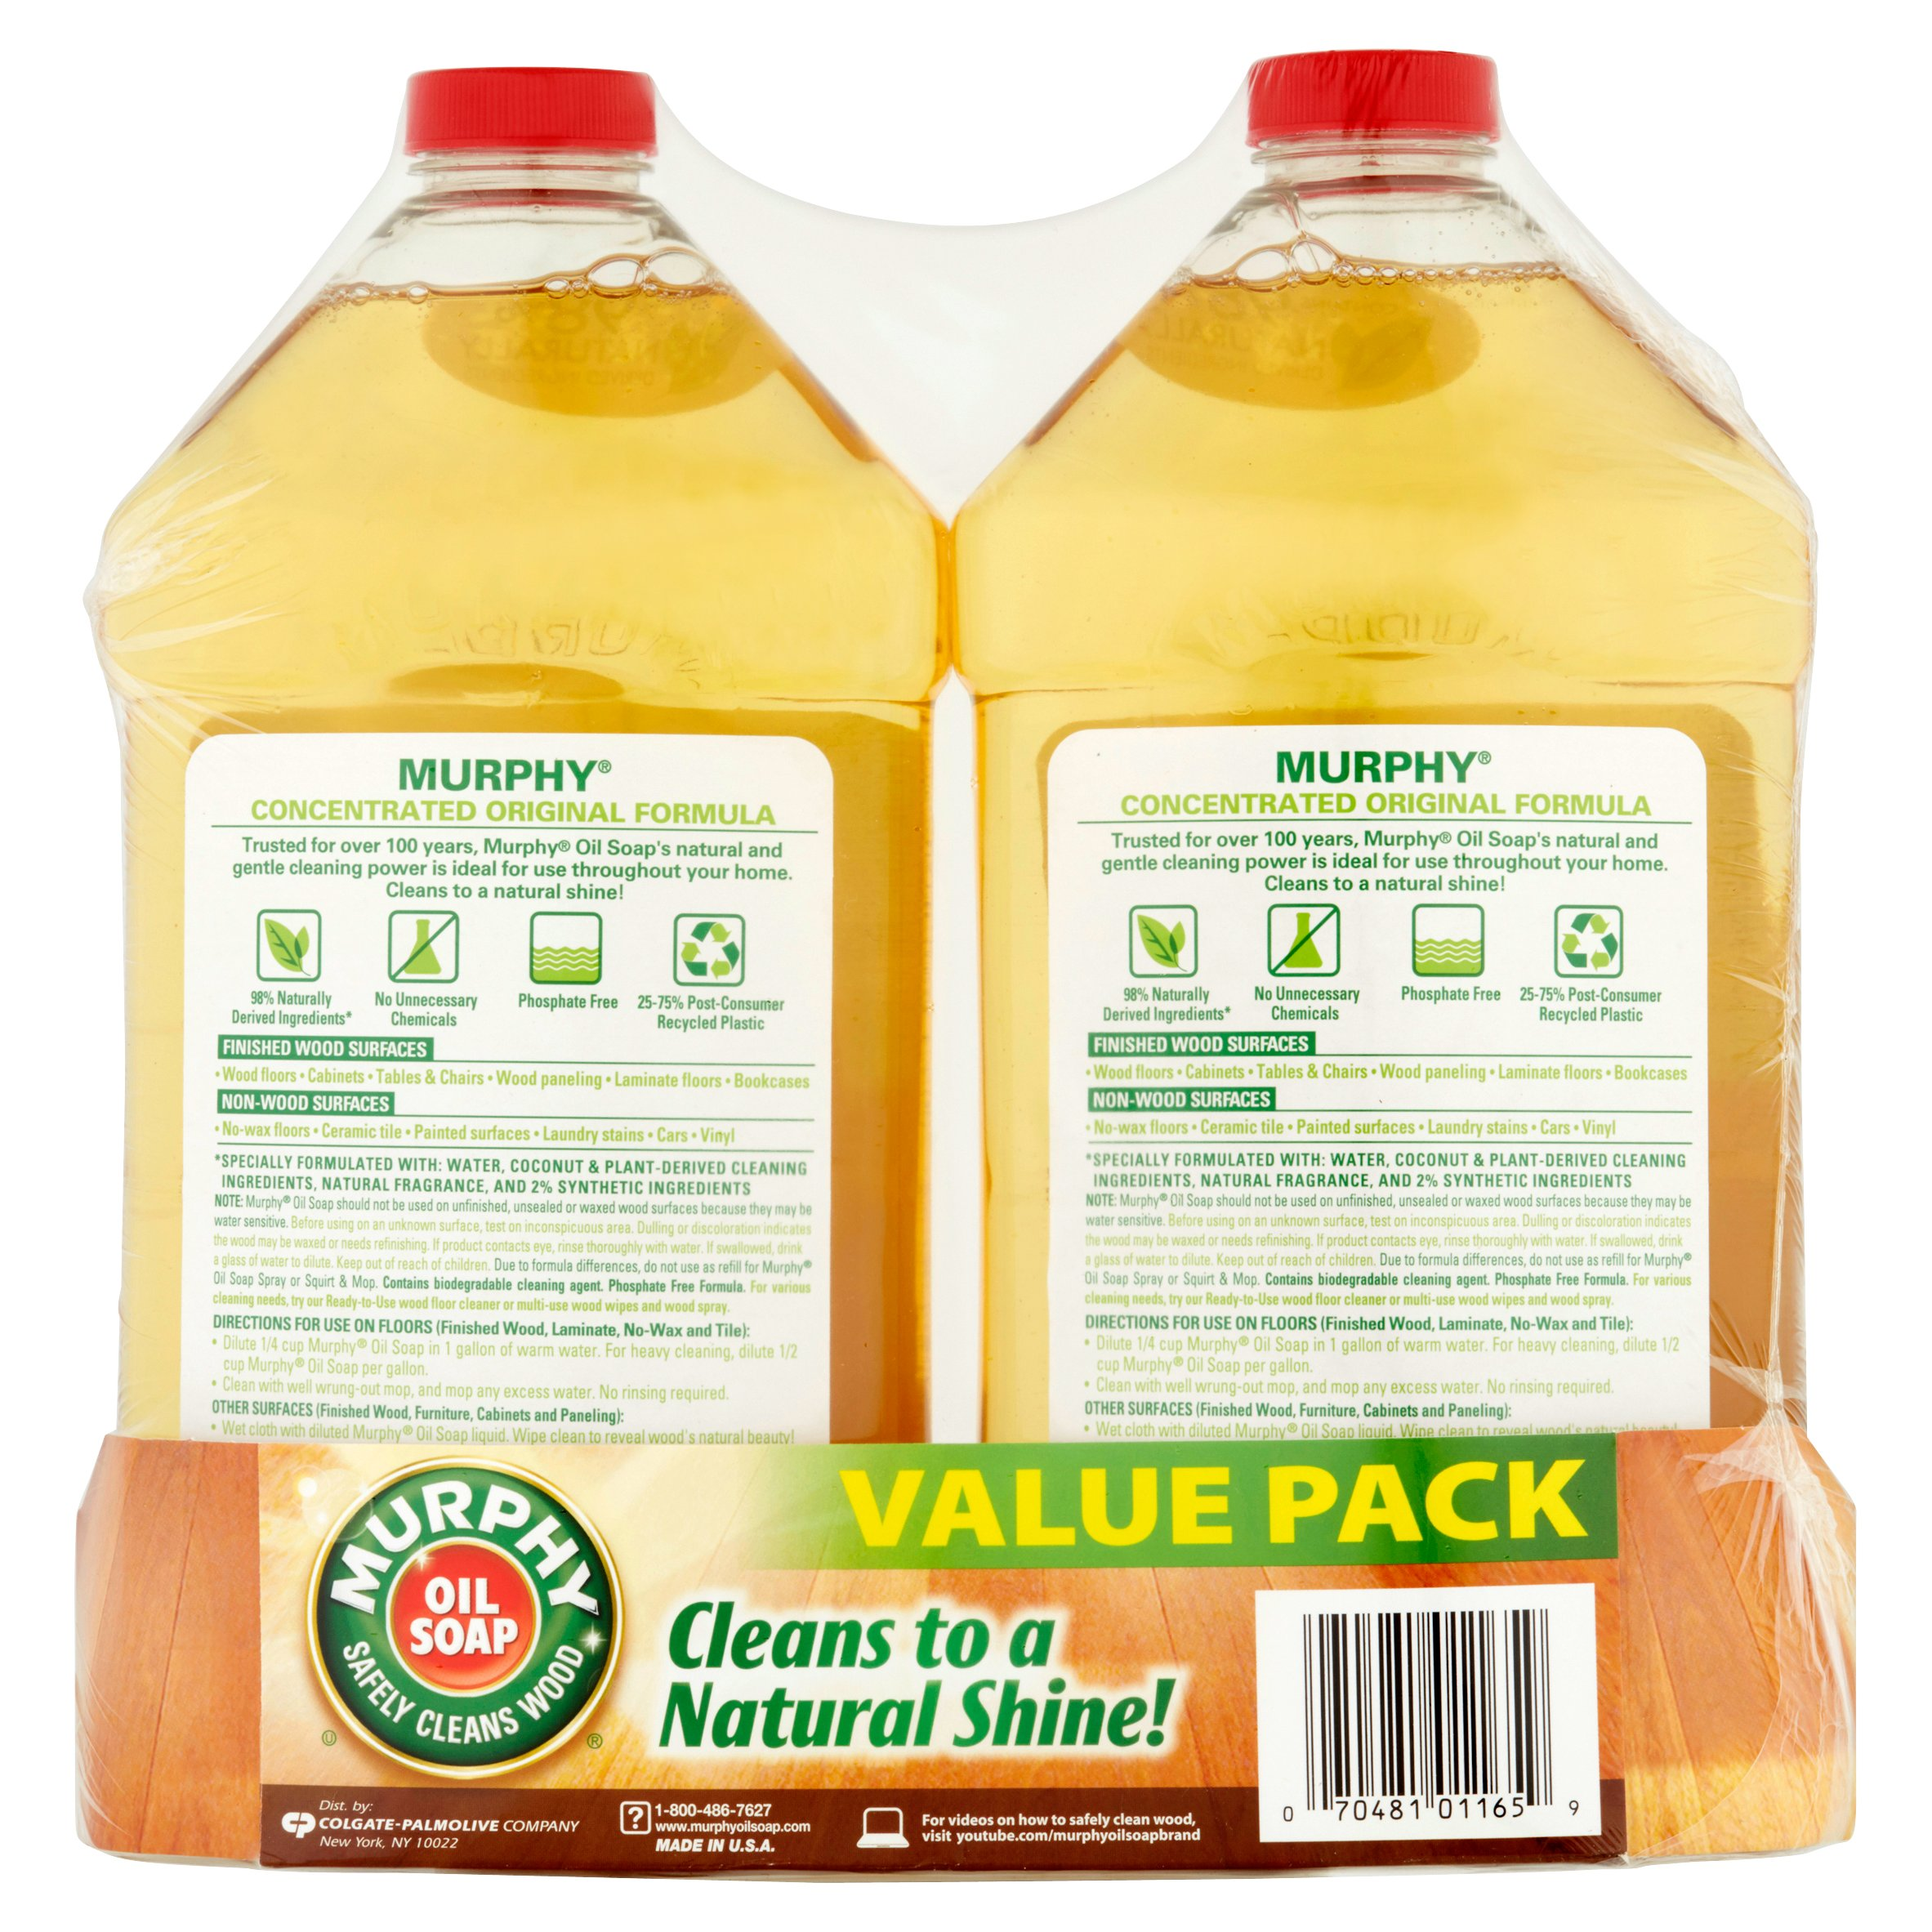 Cleaning hardwood floors with murphy oil soap - Murphy Original Conentrated Wood Floor Cleaner 32 Oz Twin Pack Walmart Com